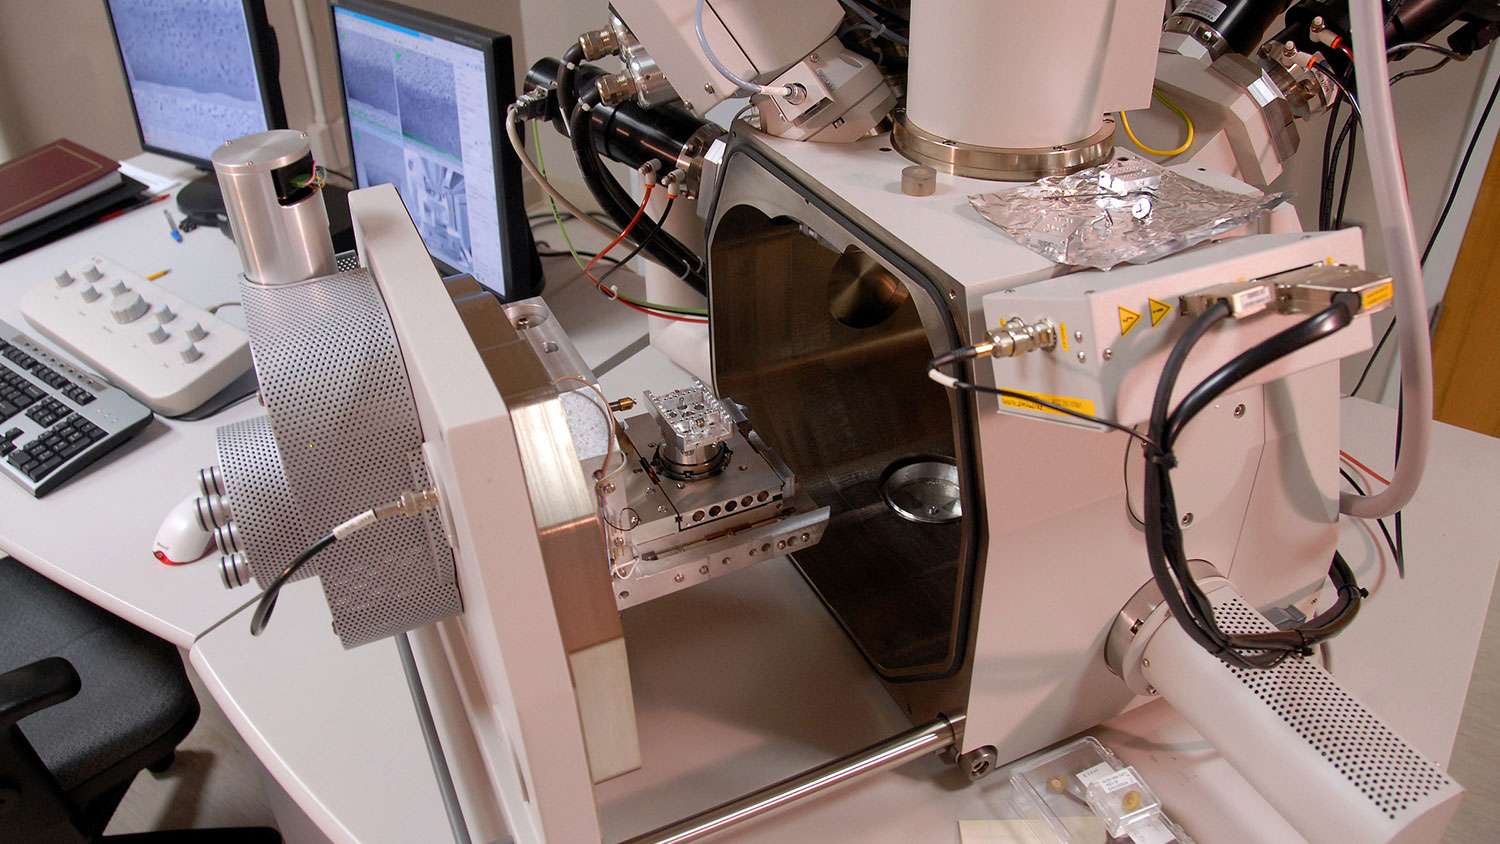 FEI Quanta 3D Dual Beam instrument in the Advanced Instrumentation Facility in Monteith Research building.